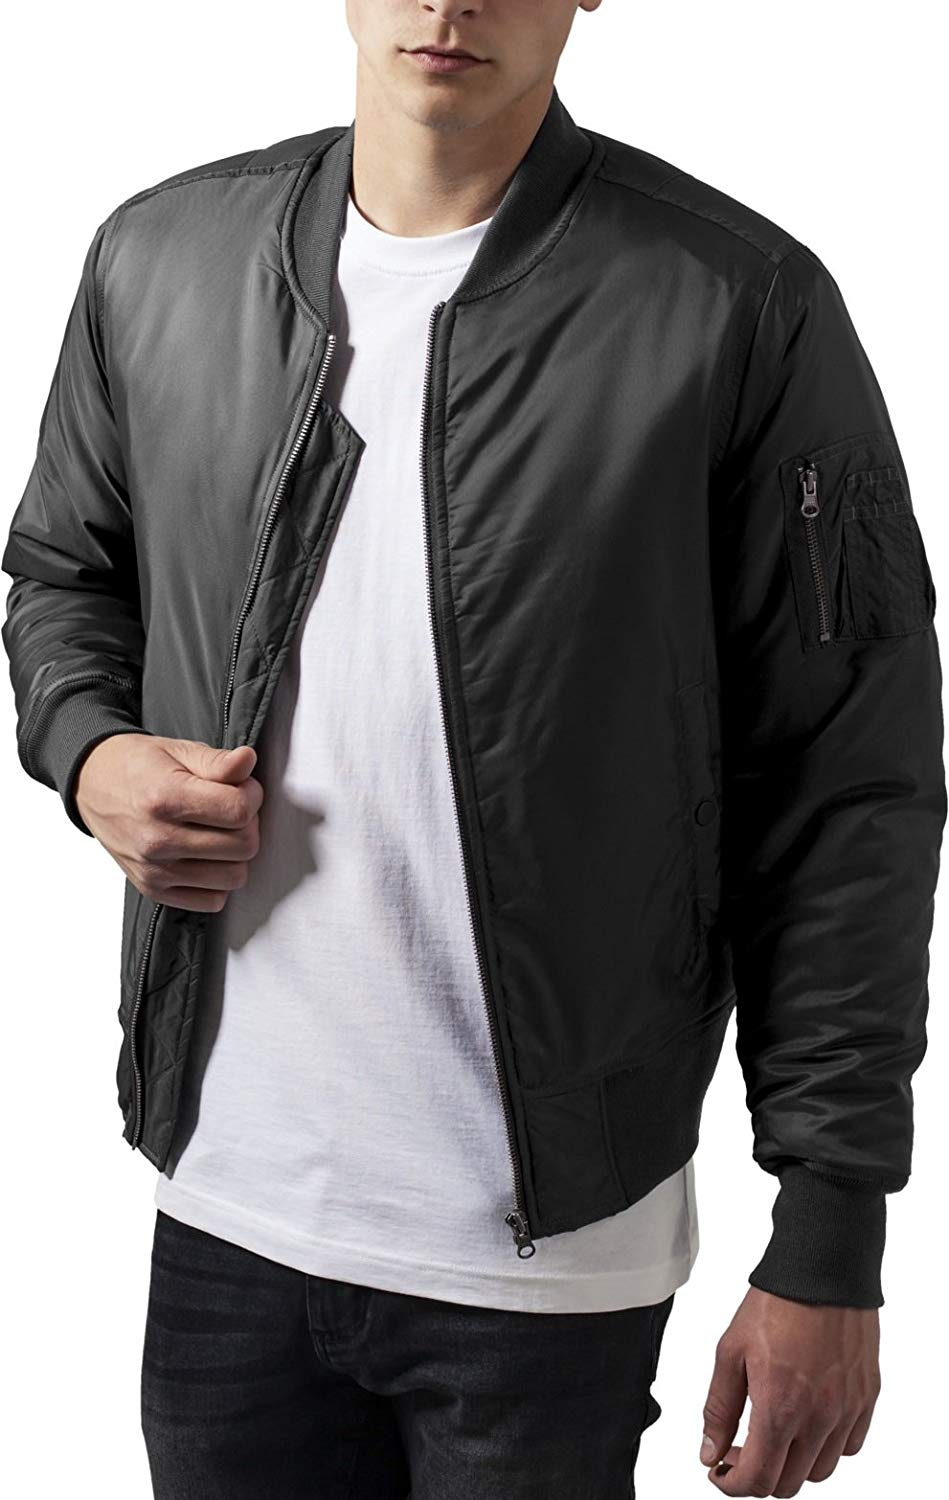 cdfd7fa77 Cheap Urban Bomber Jacket, find Urban Bomber Jacket deals on line at ...